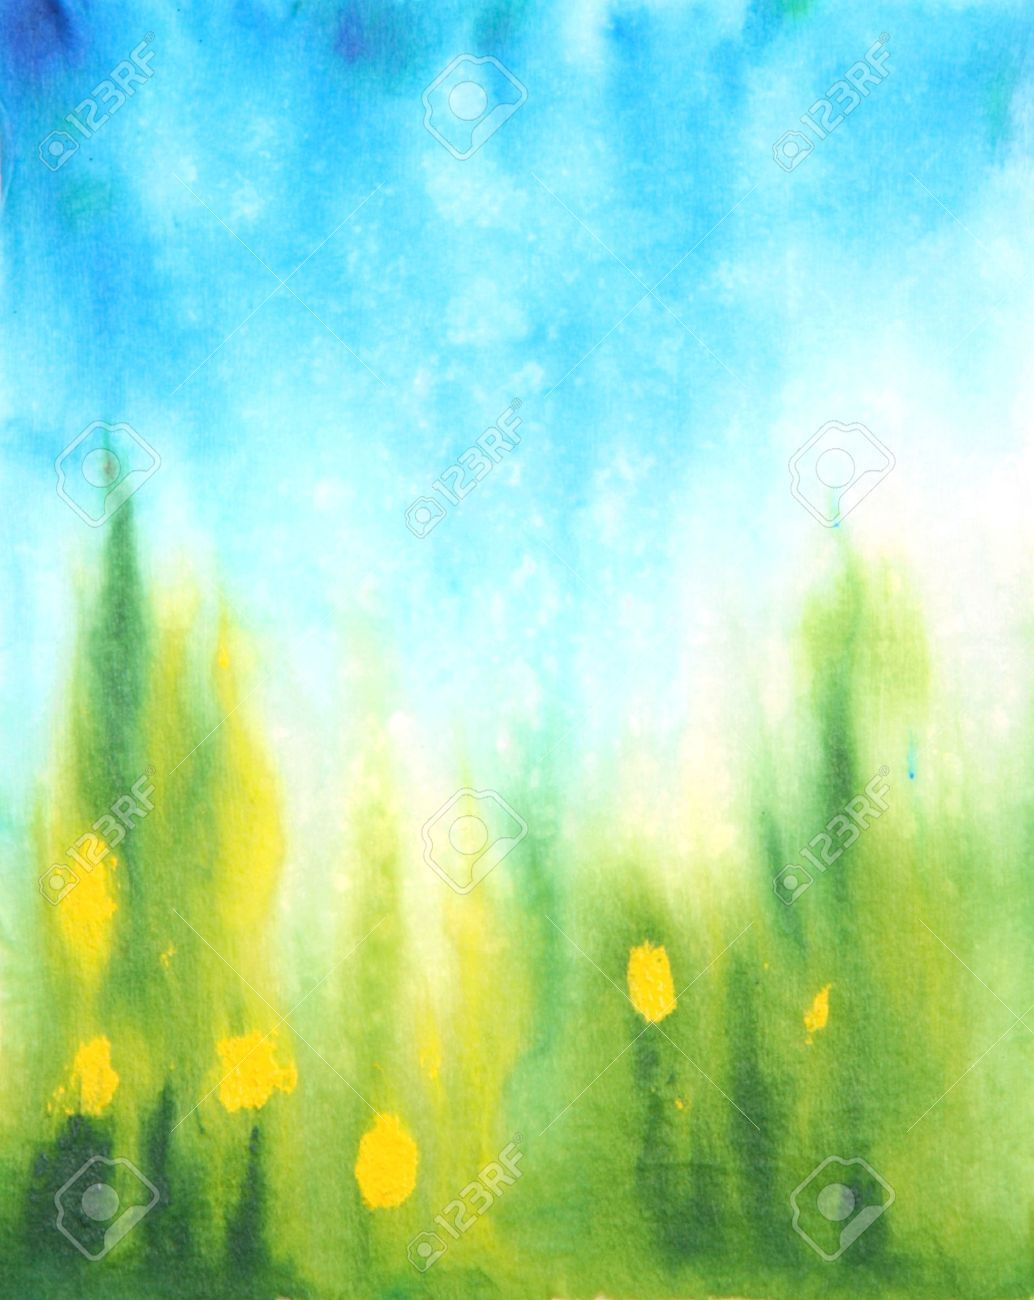 Stock Photo Watercolor Background Green Watercolor Grass